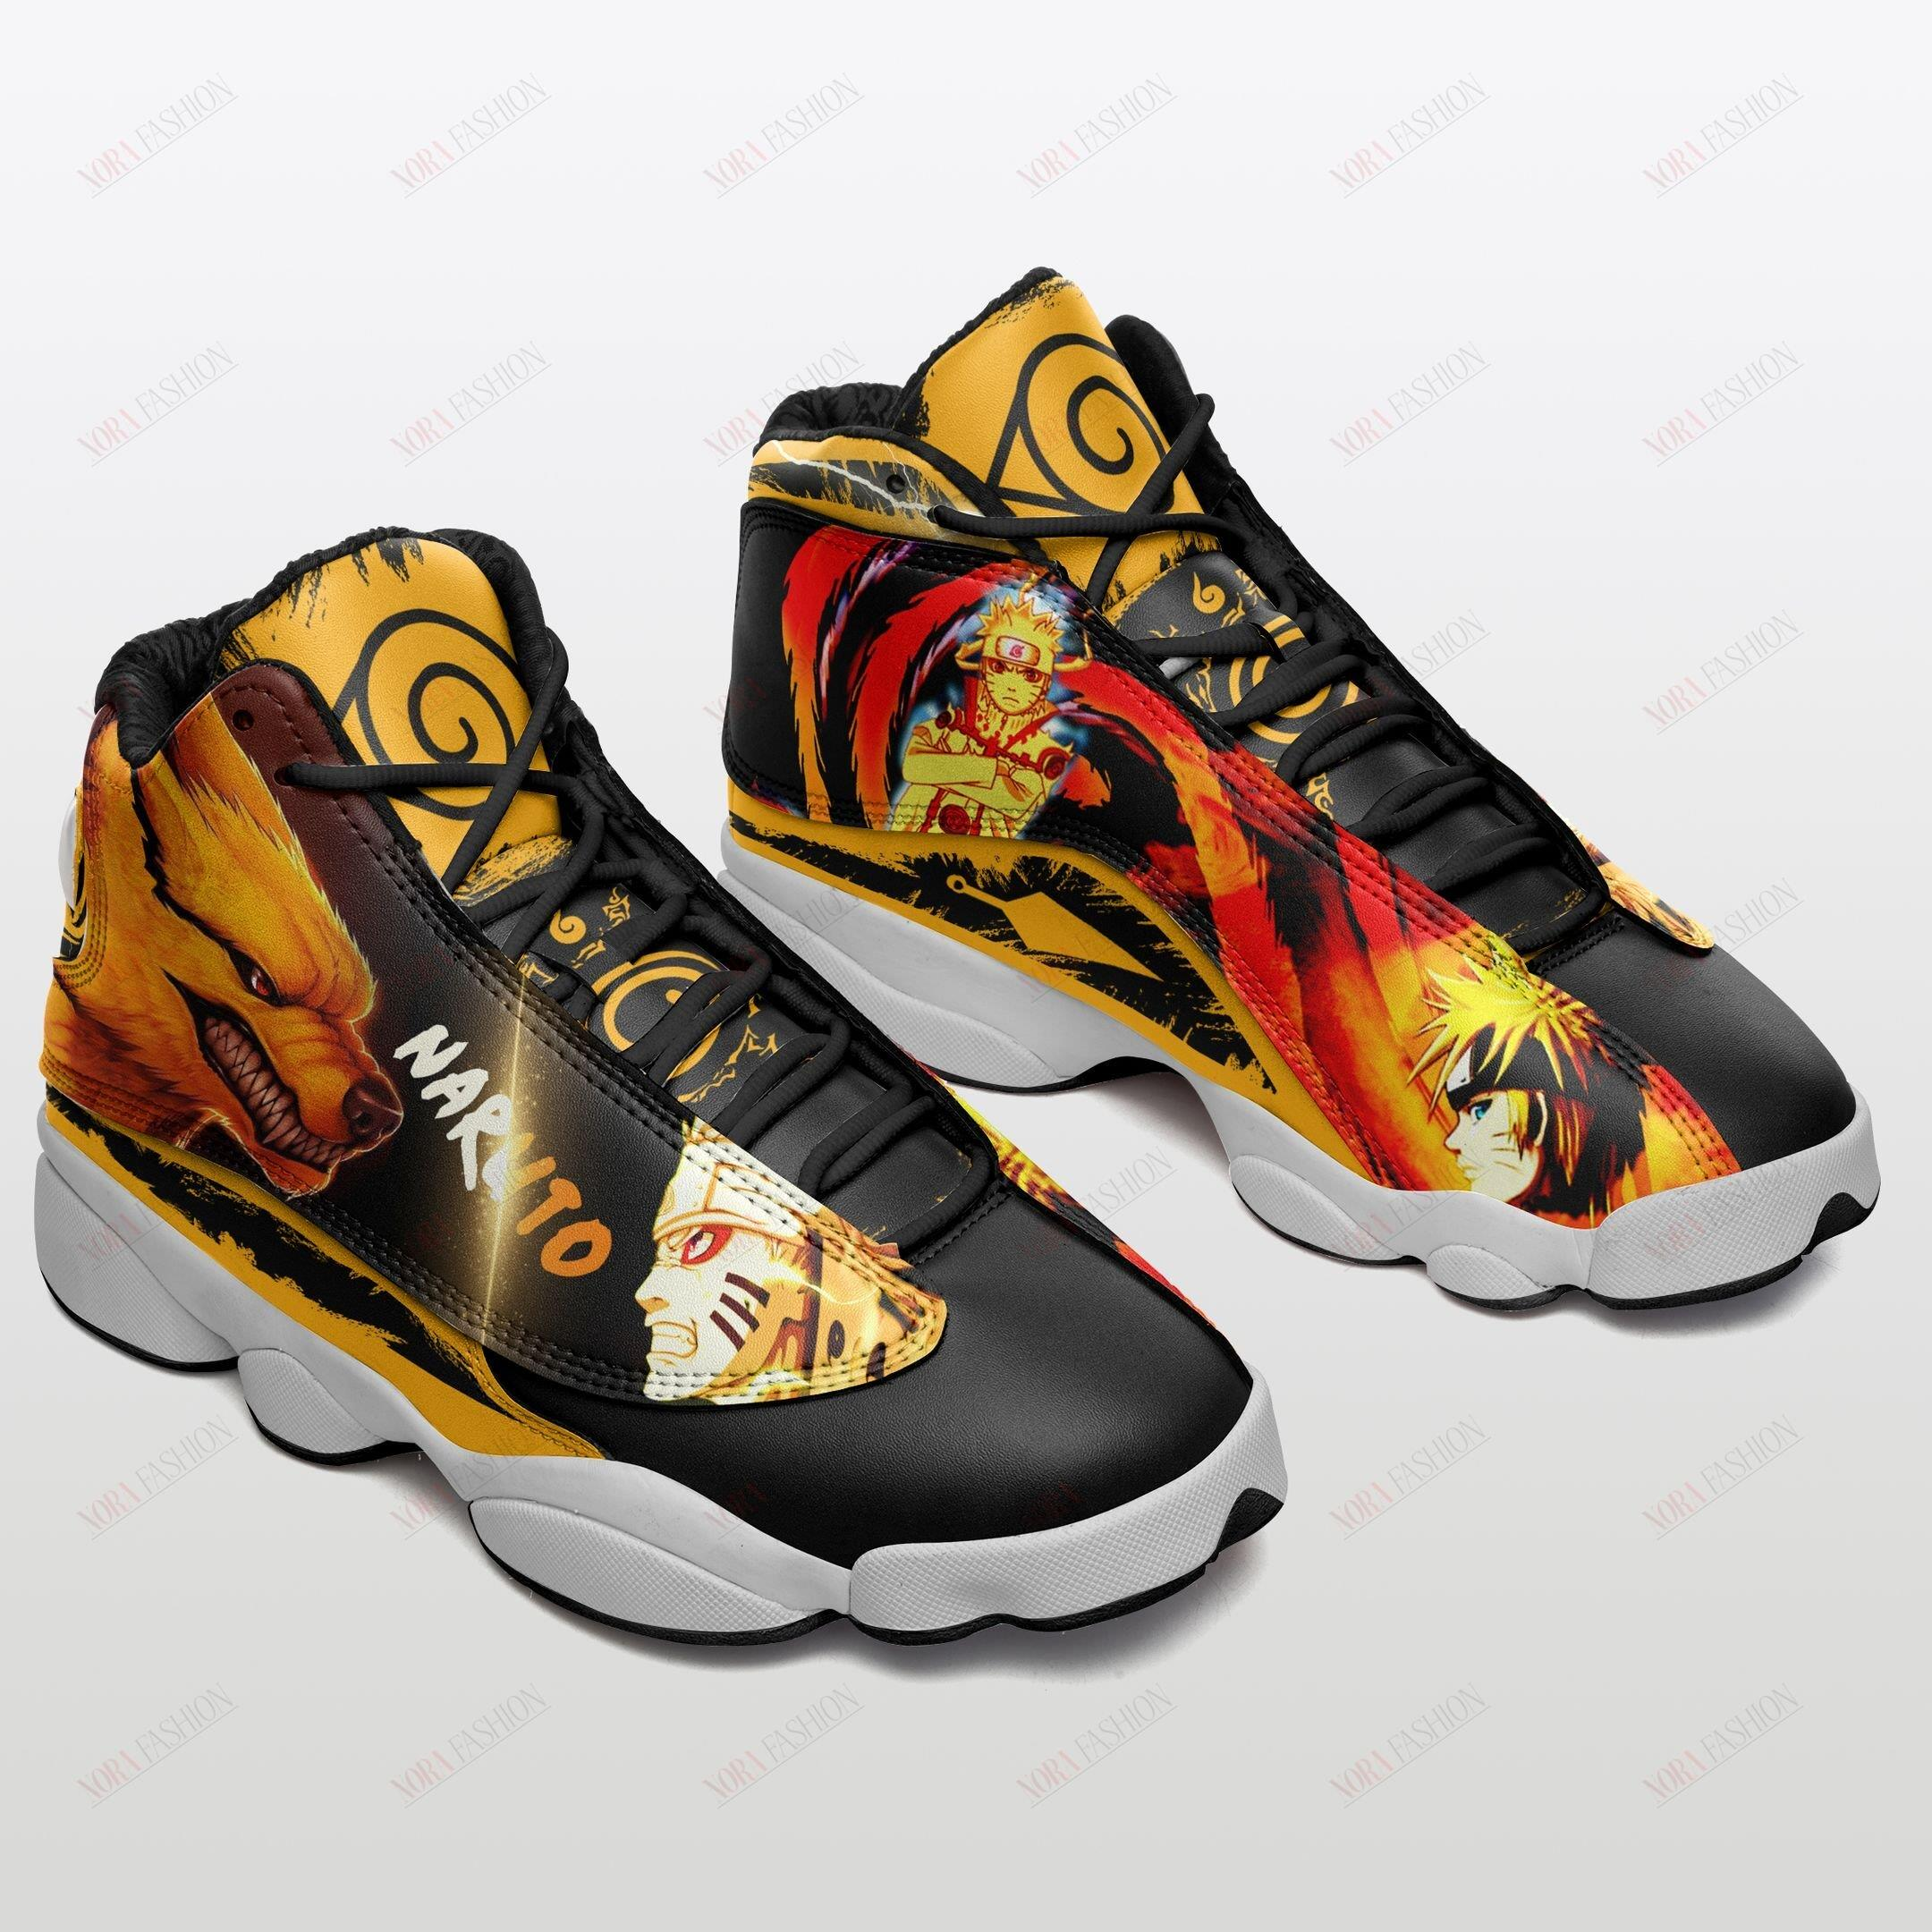 Naruto Air Jordan 13 Sneakers Sport Shoes Full Size